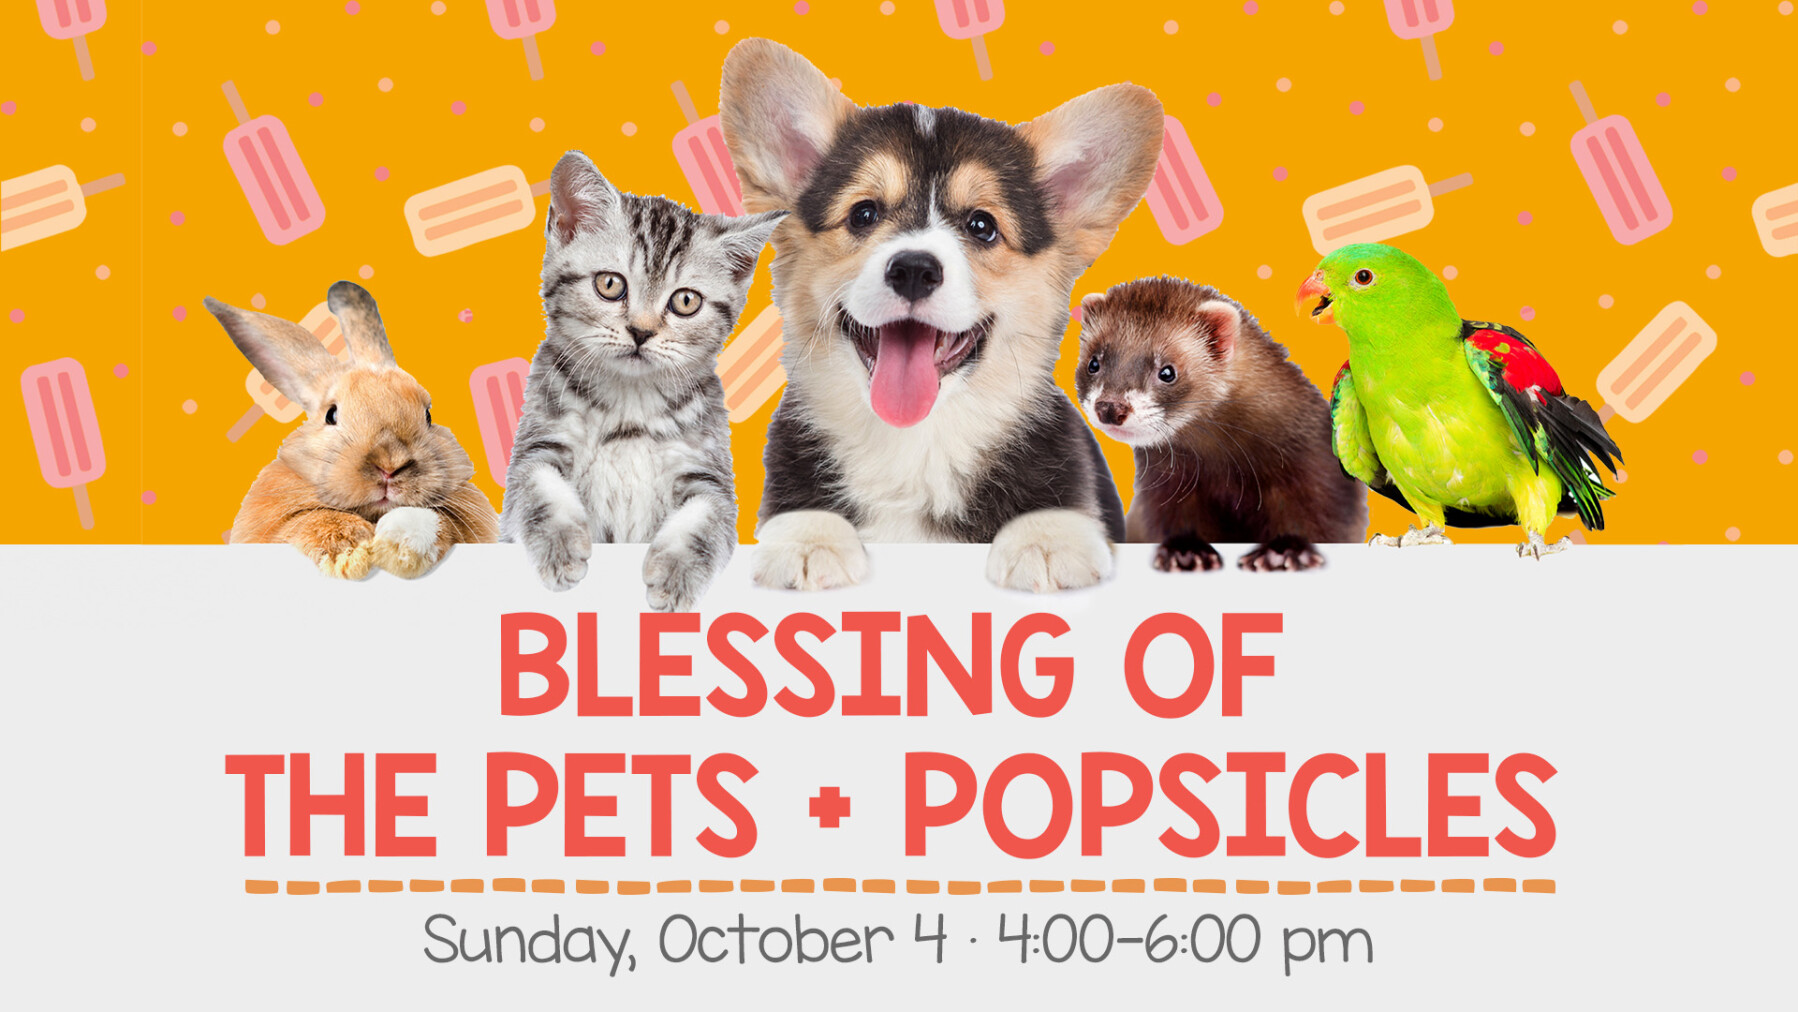 Blessing of the Pets + Popsicles